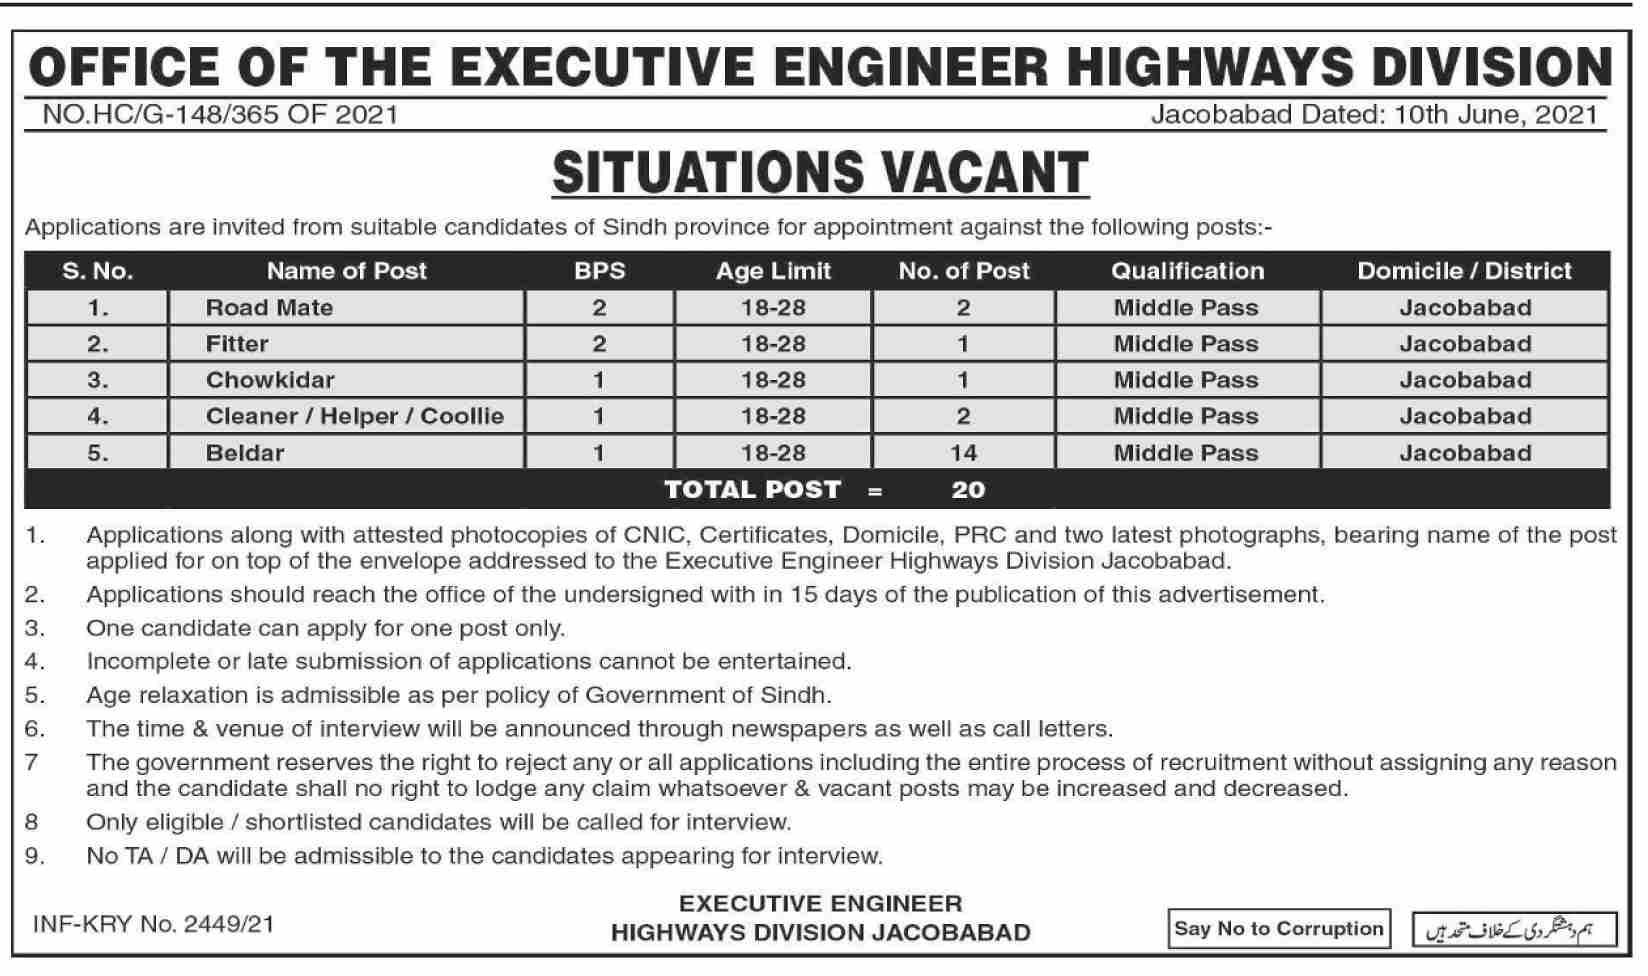 Executive Engineer Office Highways Division Jacobabad Jobs 2021 in Pakistan